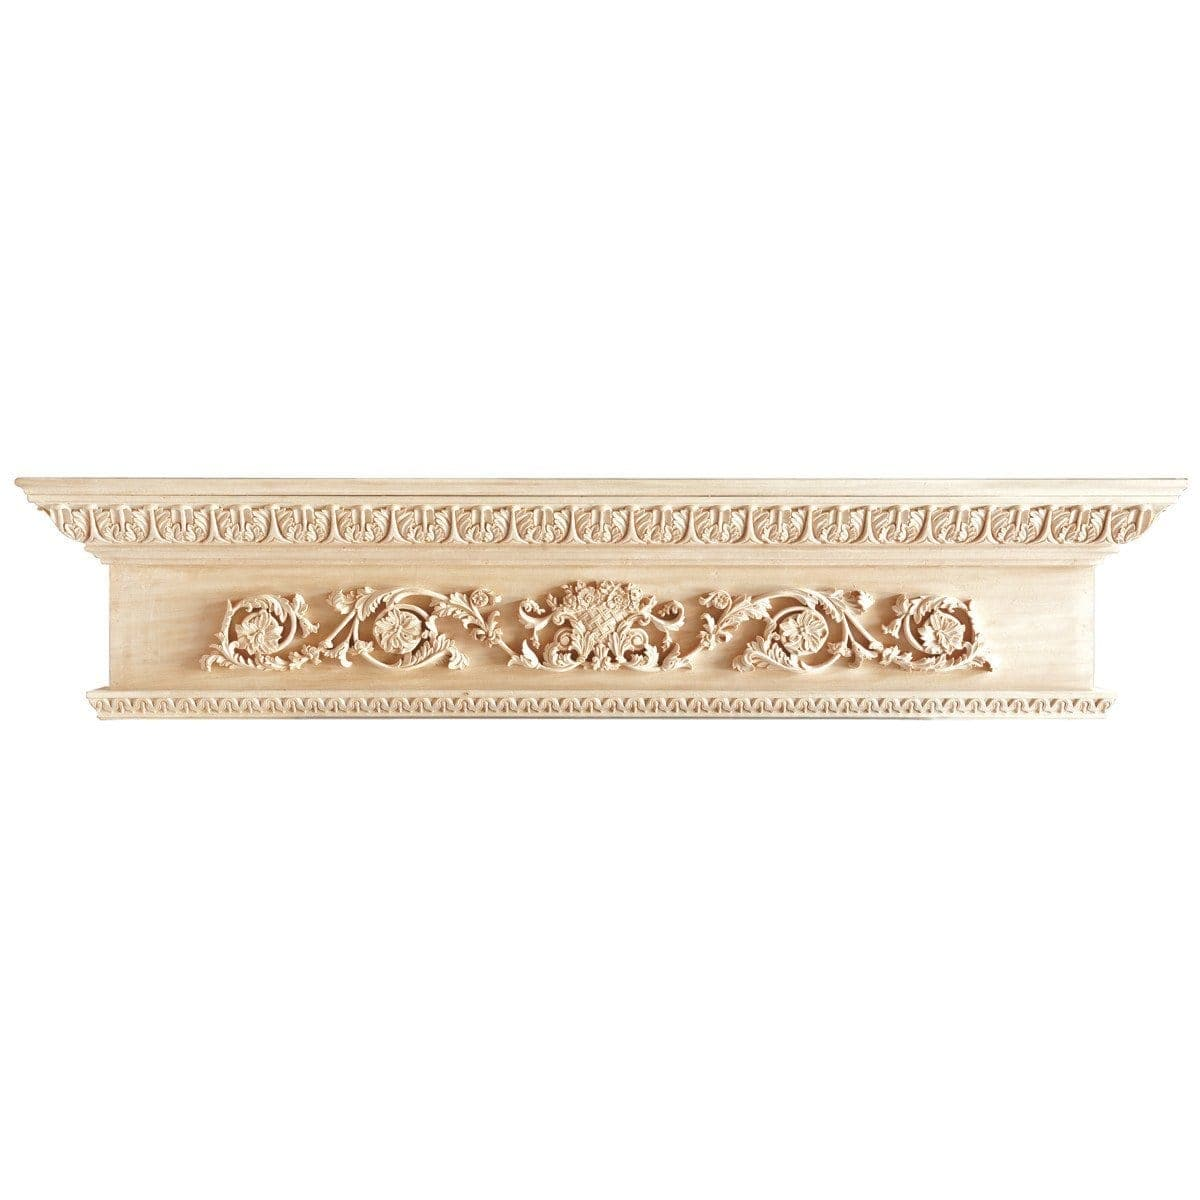 Rinceau Scroll with Flower Basket, 60'' x 8'' x 12 1/2'', Lindenwood